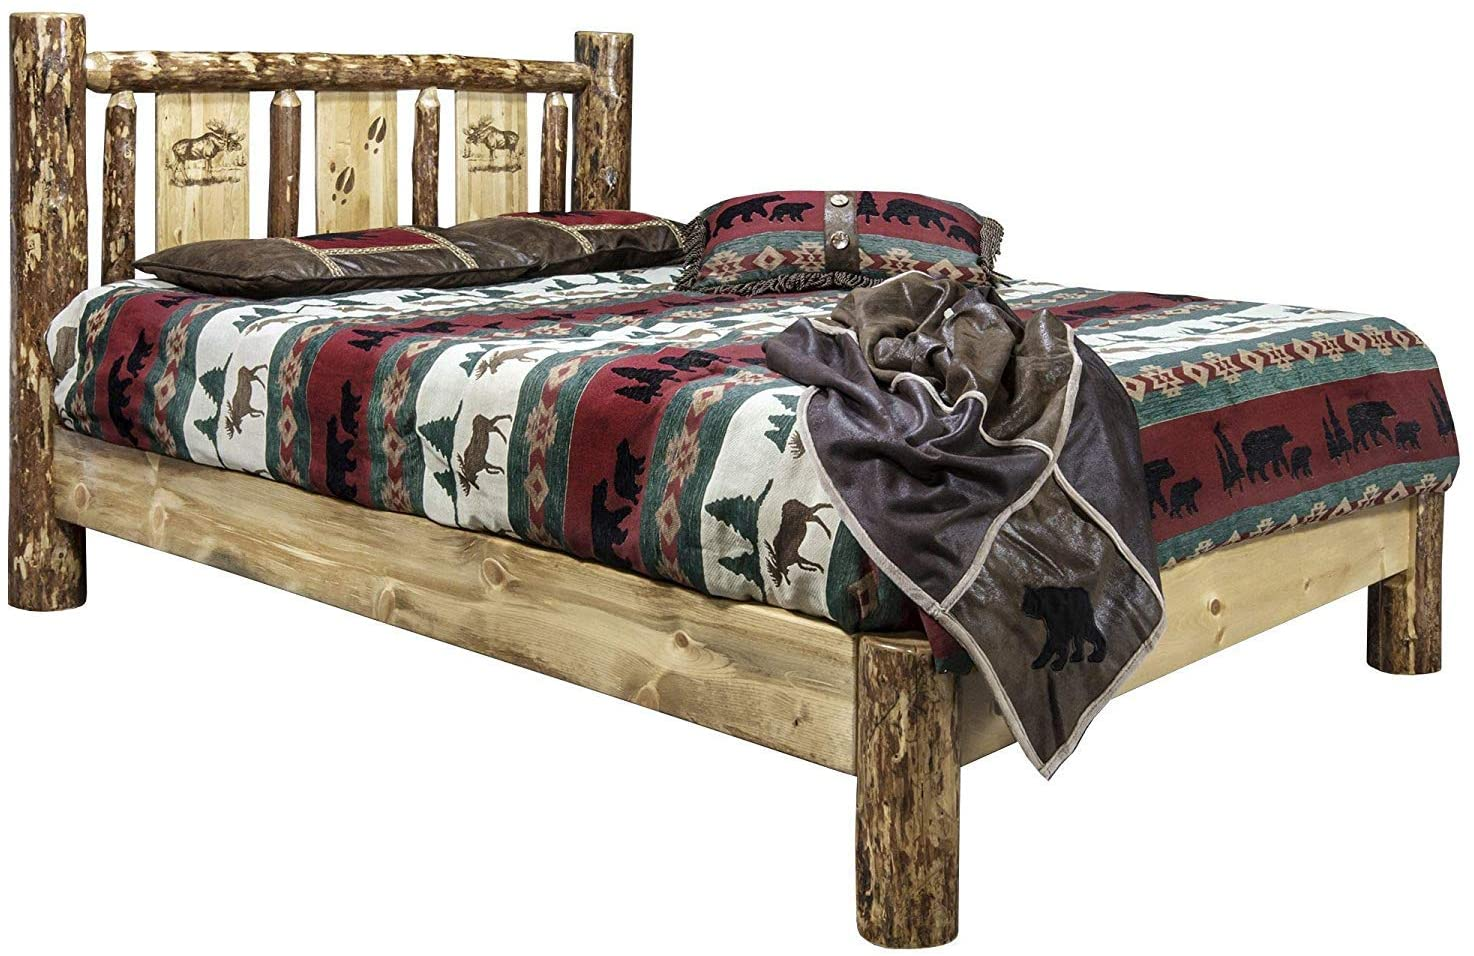 Montana Woodworks Glacier Country Collection Twin Platform Bed w/Laser Engraved Moose Design